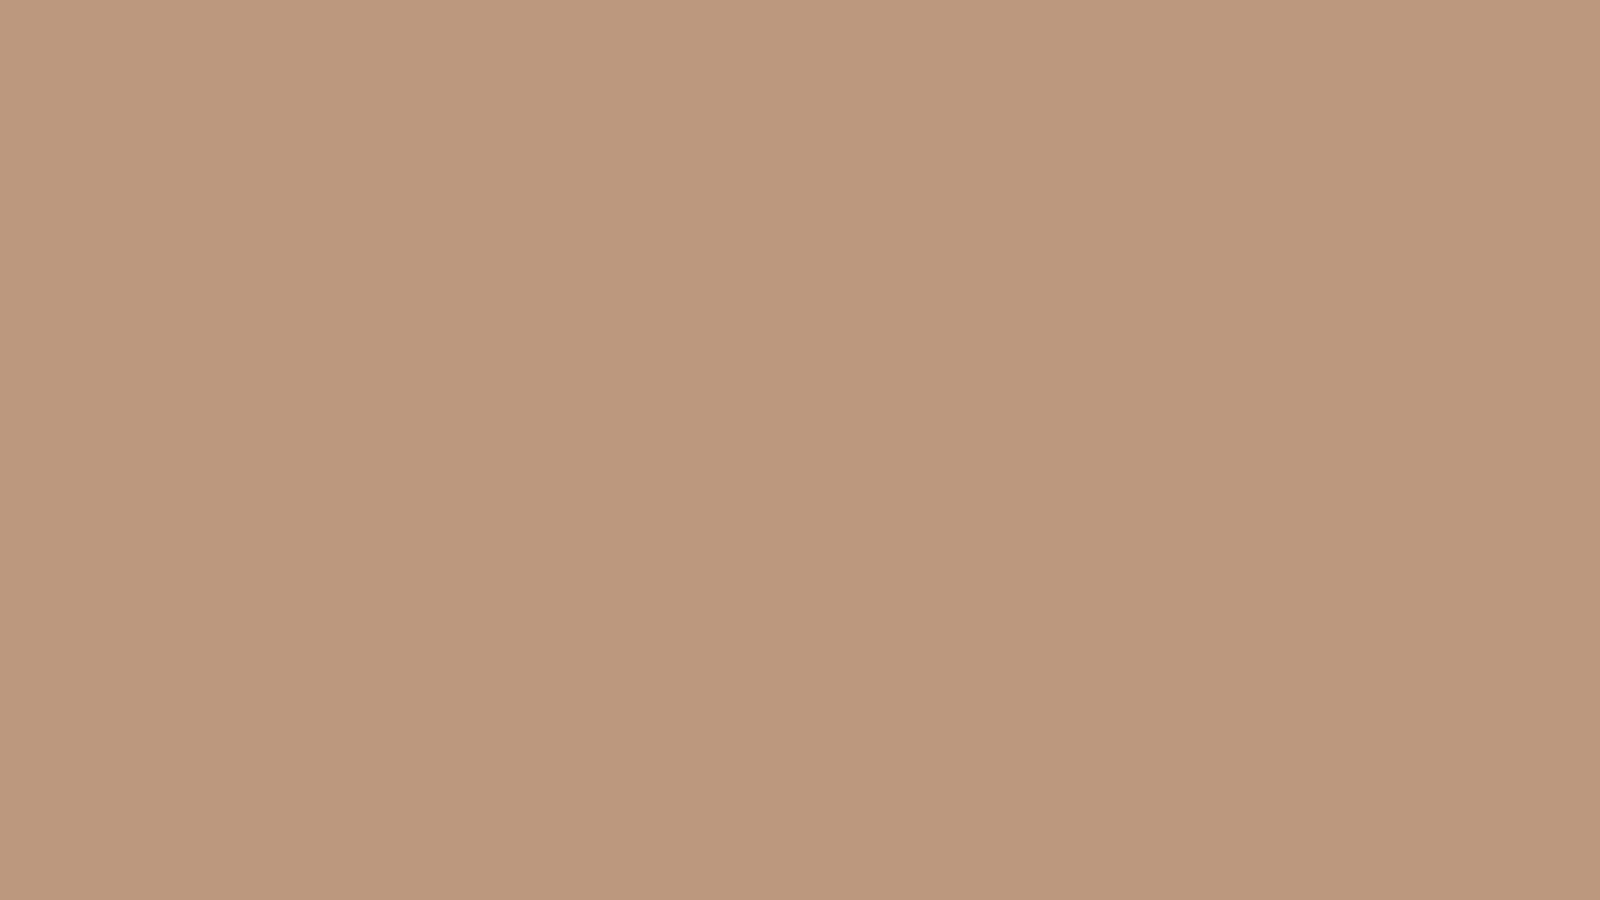 1600x900 Pale Taupe Solid Color Background